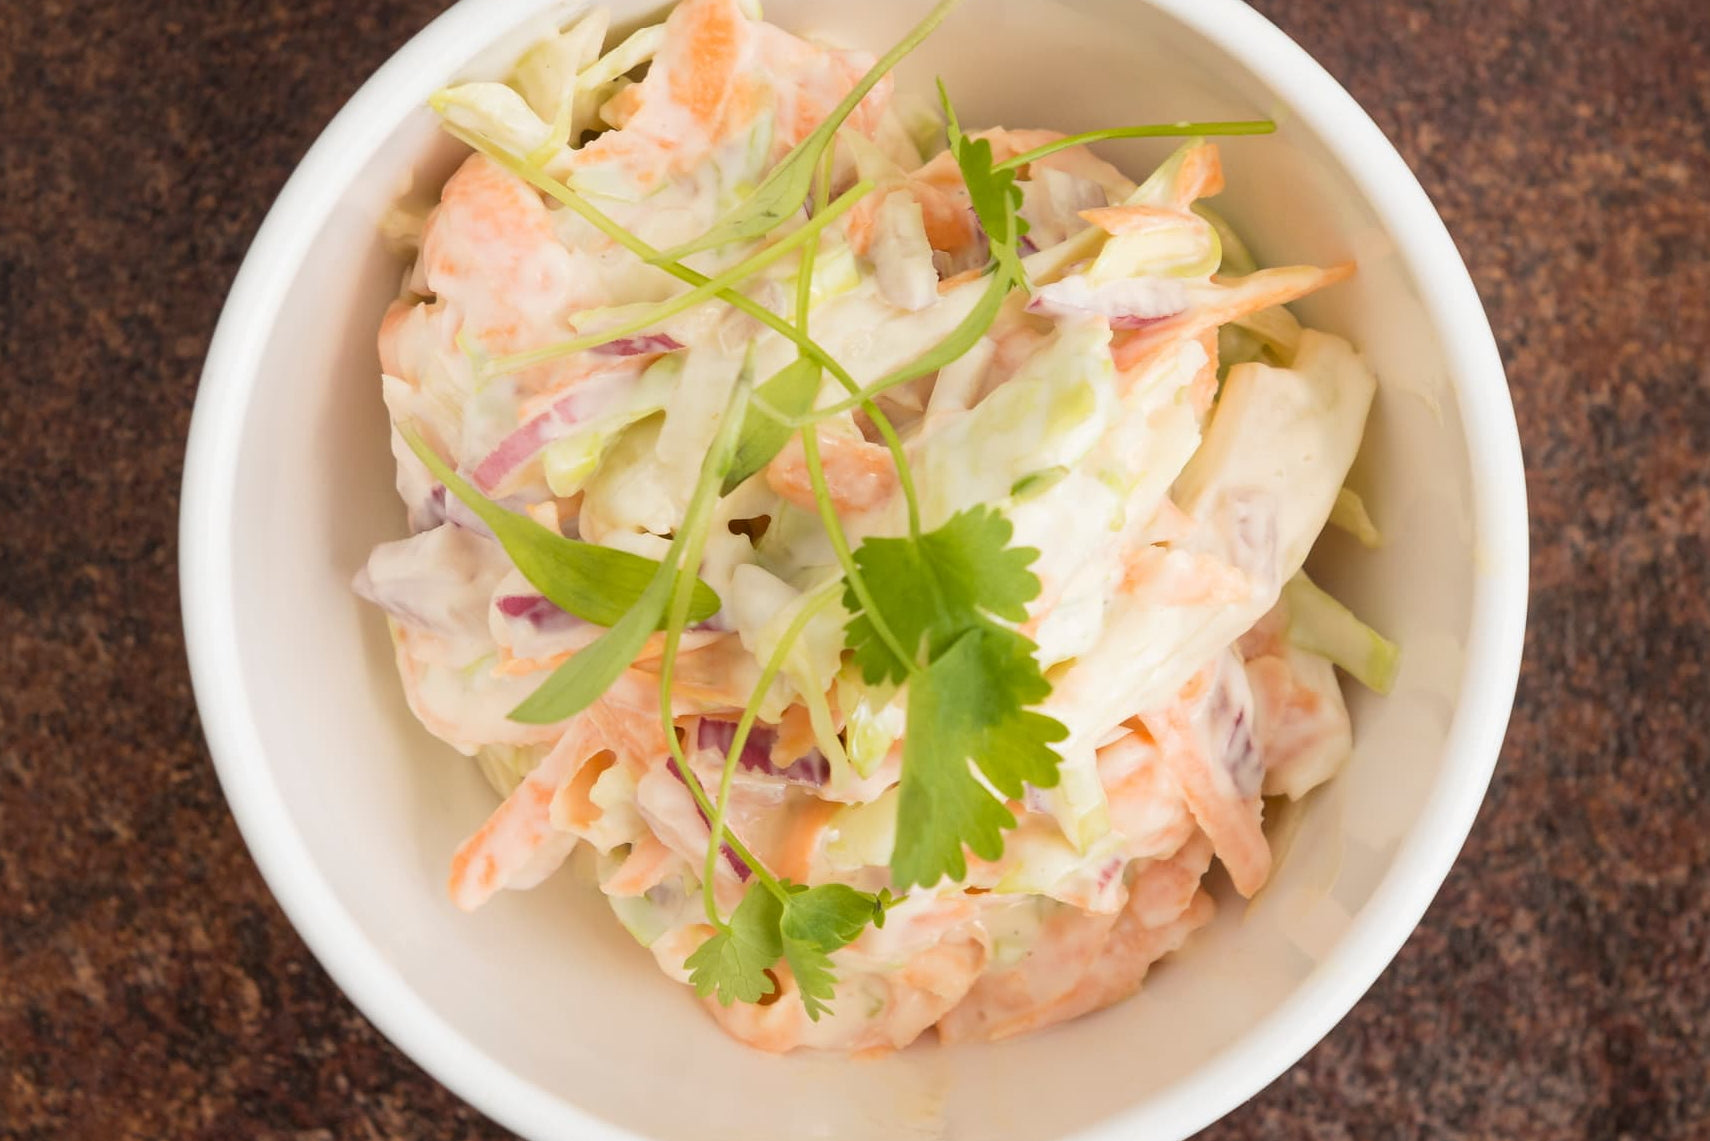 Coleslaw To Share For 2 People (V)